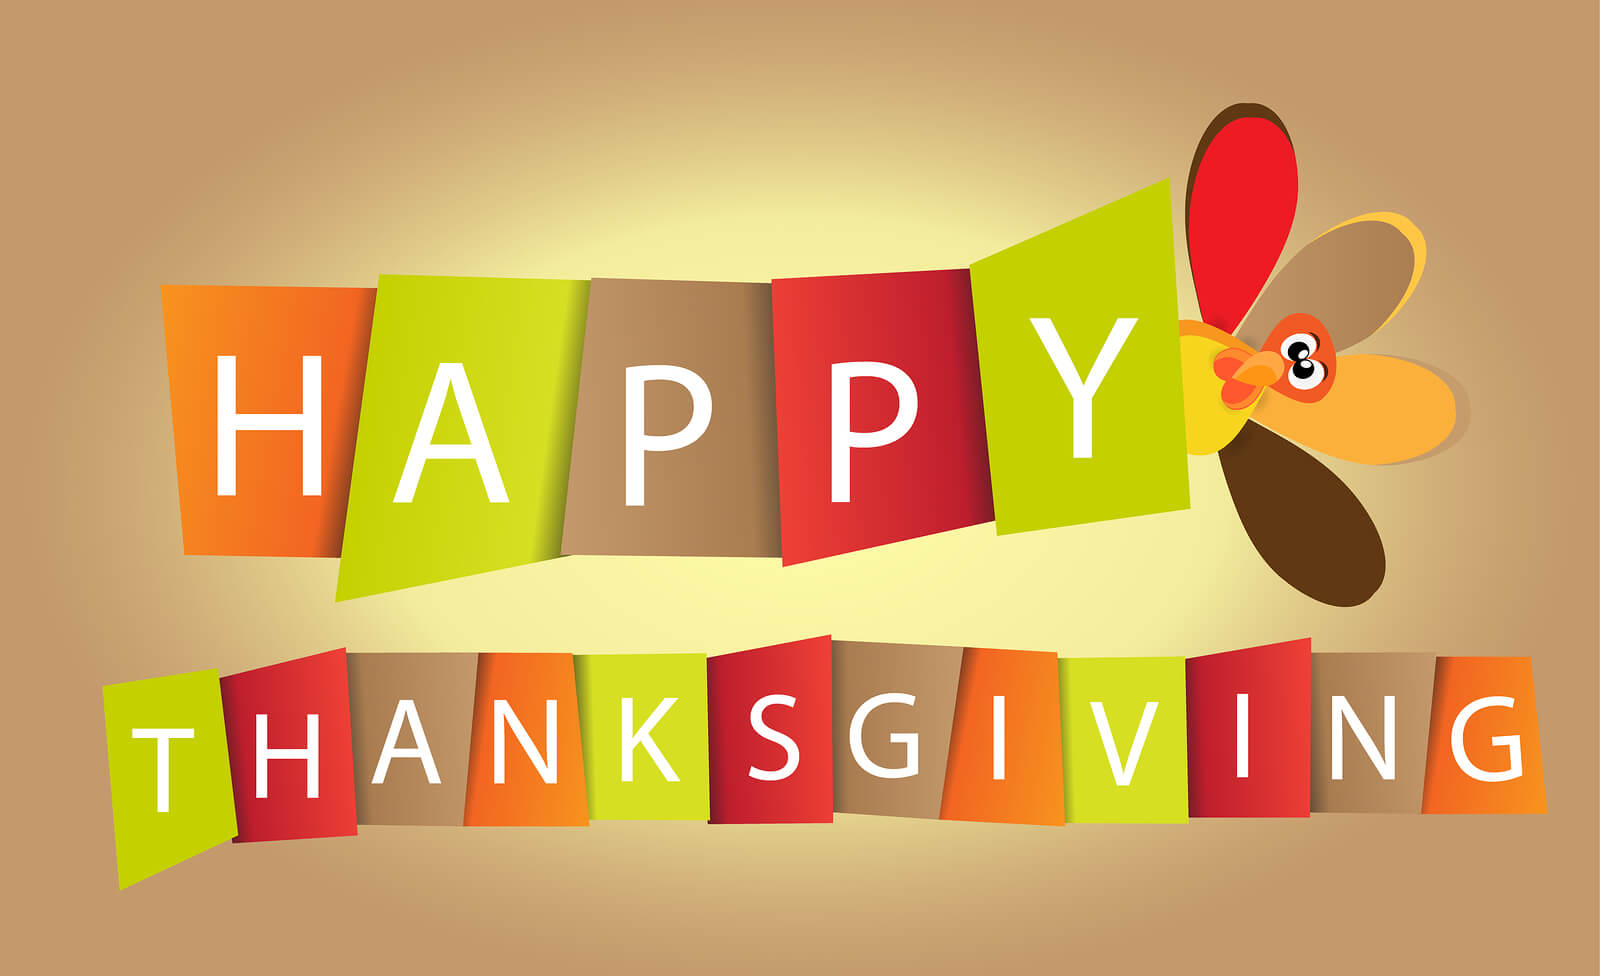 Happy thanksgiving day 2016